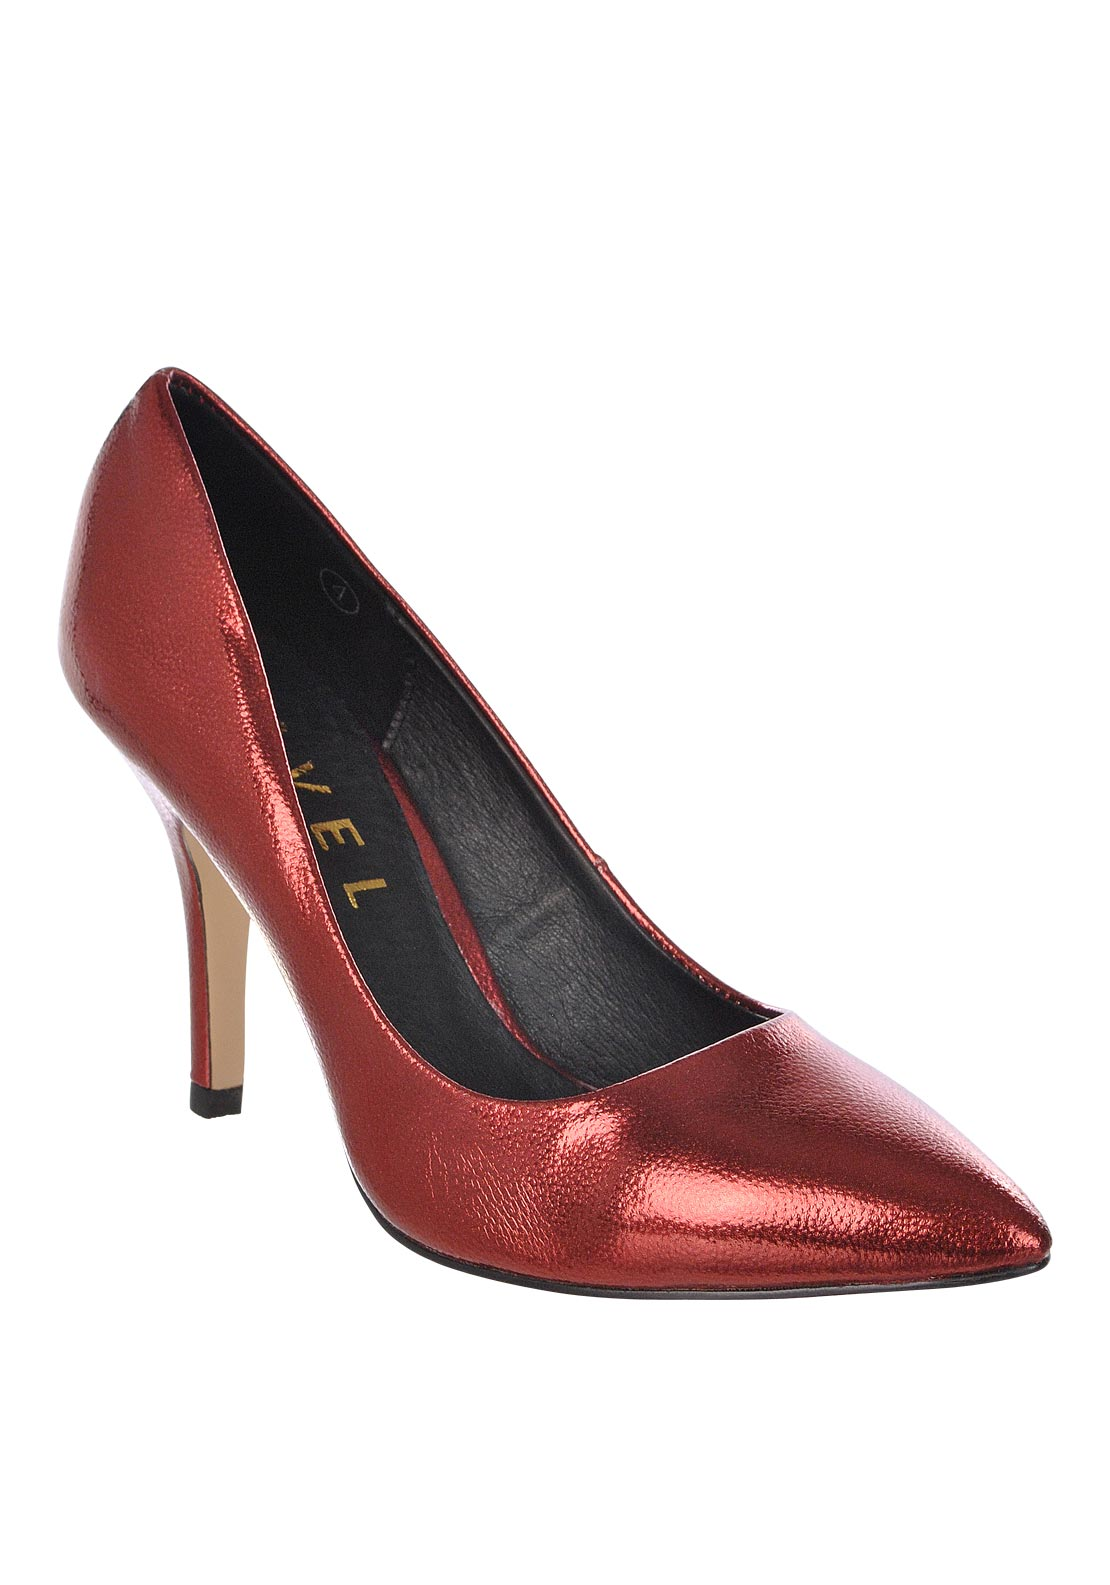 Ravel Womens Mableton High Heel Pointed Toe Shoe, Burgundy